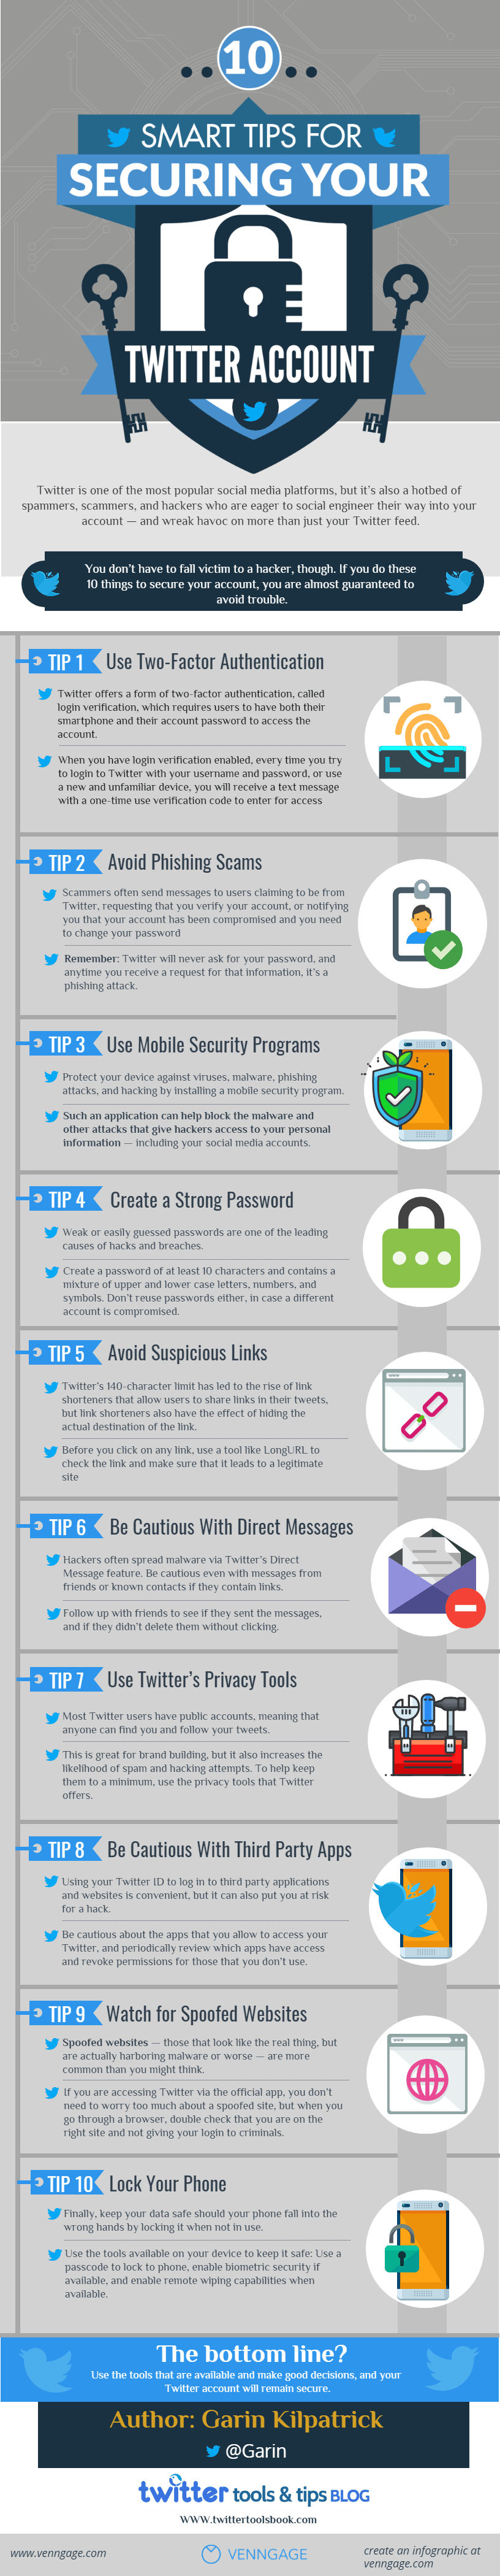 10-smart-tips-for-securing-your-twitter-account-infographic-816x4200